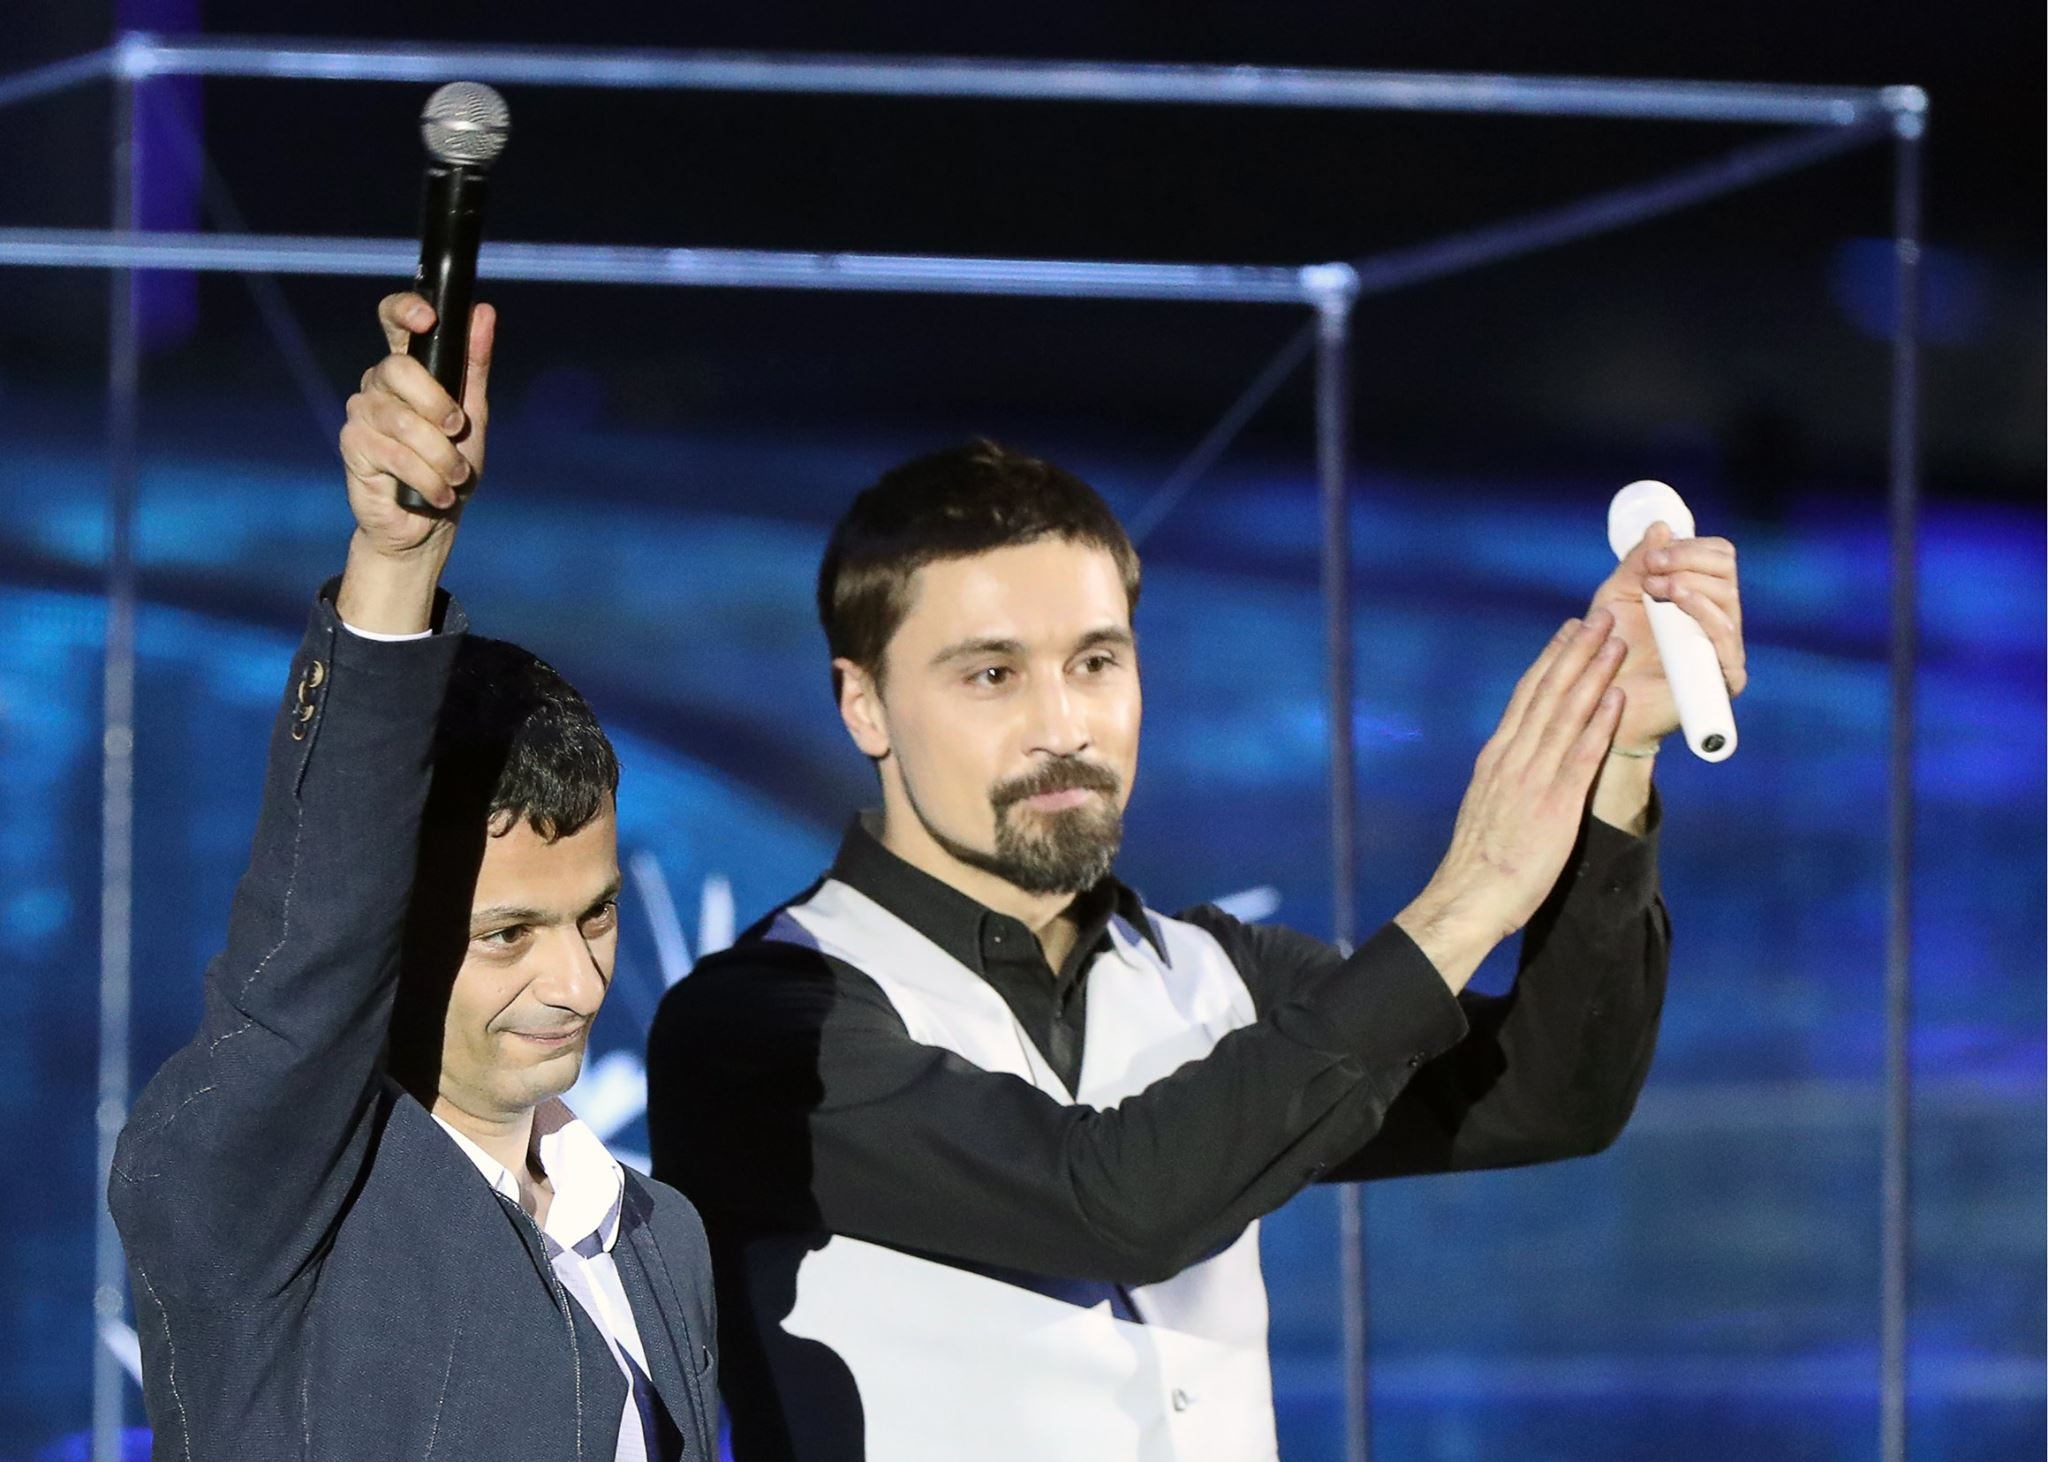 Professor Artem Oganov (left) waves to the audience alongside popstar Dima Bilan during the opening ceremony of the World Festival of Youth and Students in Sochi. Photo: Francesca Nesterenko // Facebook.